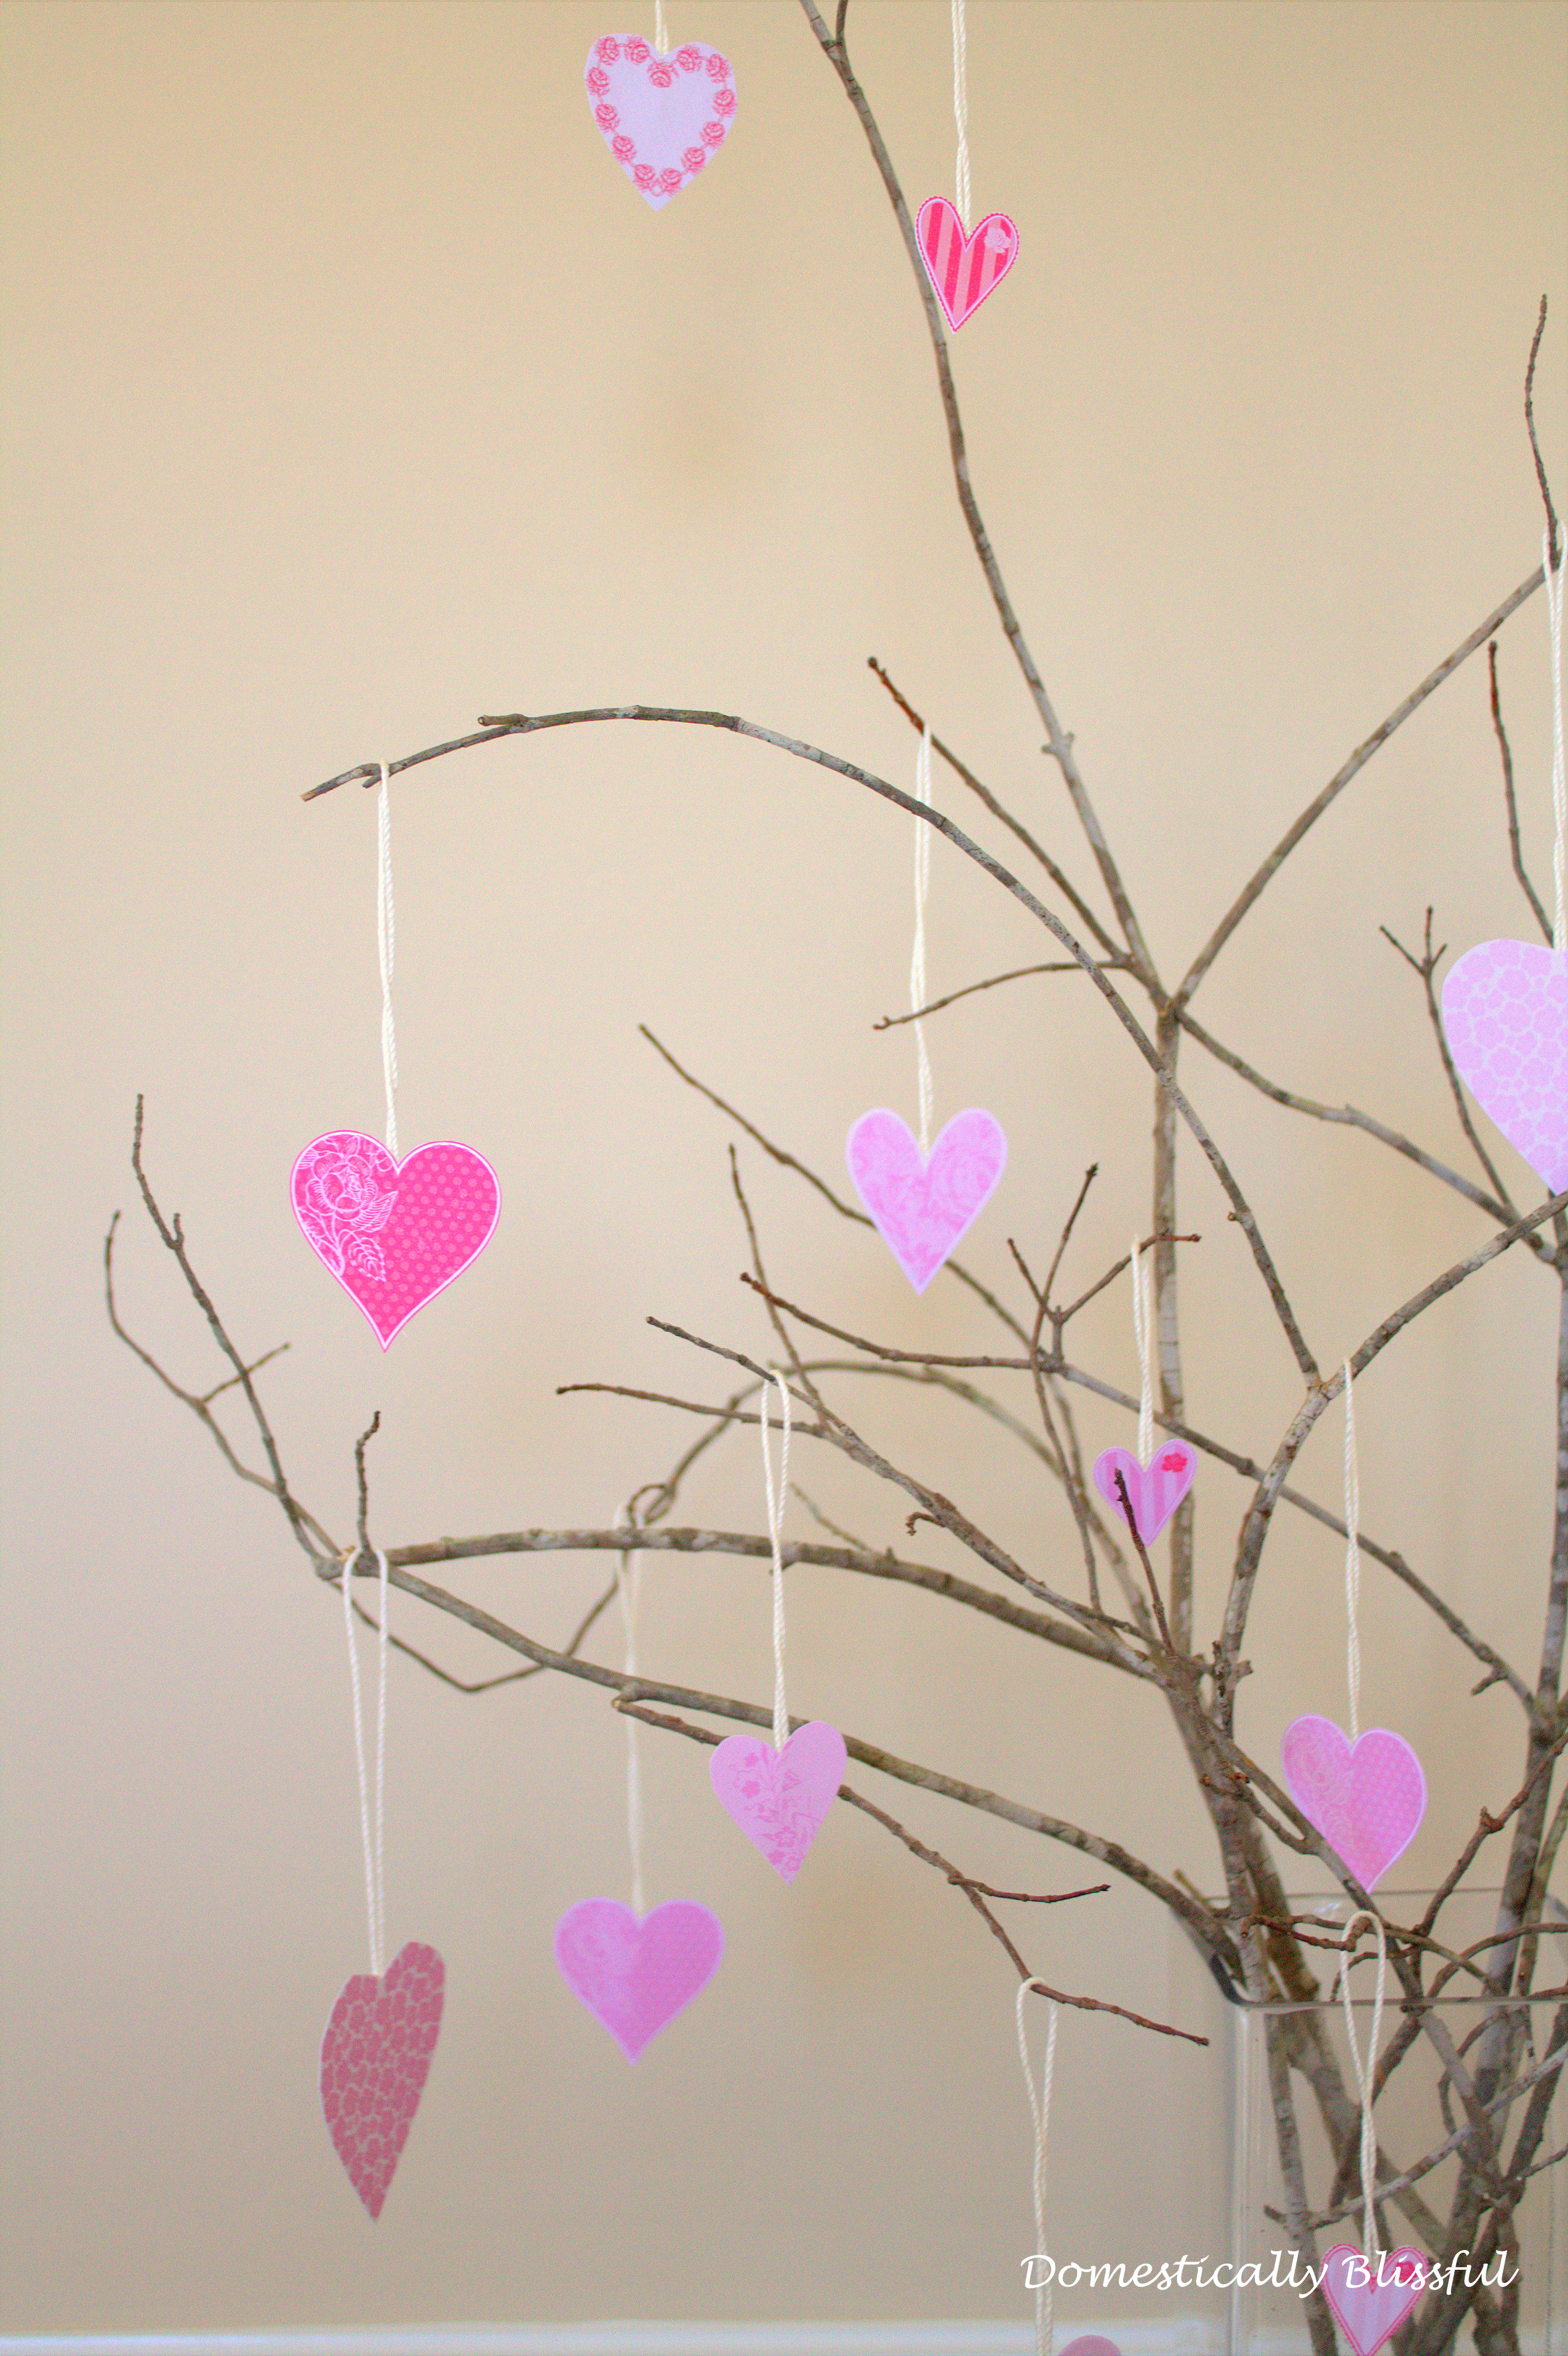 Hearts on tree branches